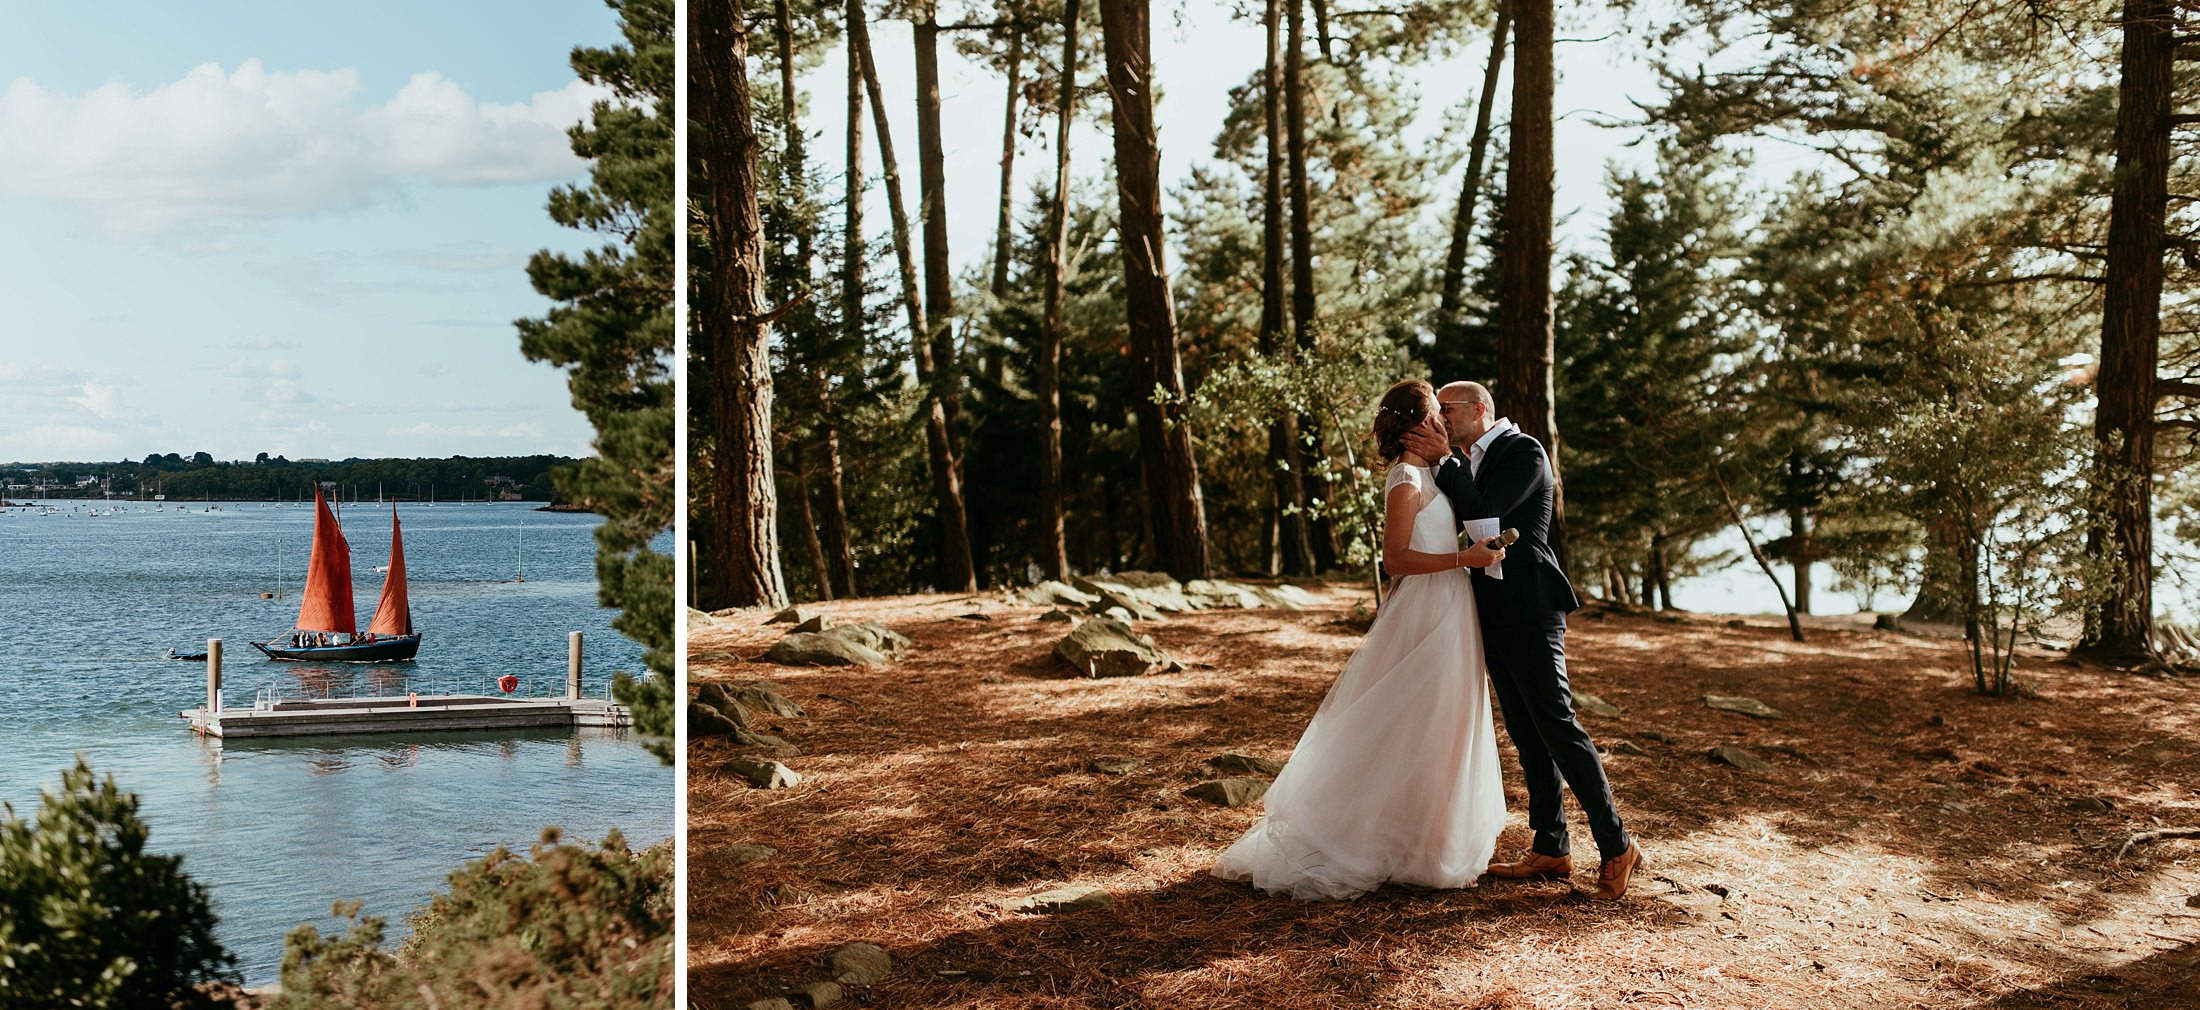 Mariage-storytelling-IleauxMoines-charlesseguy24